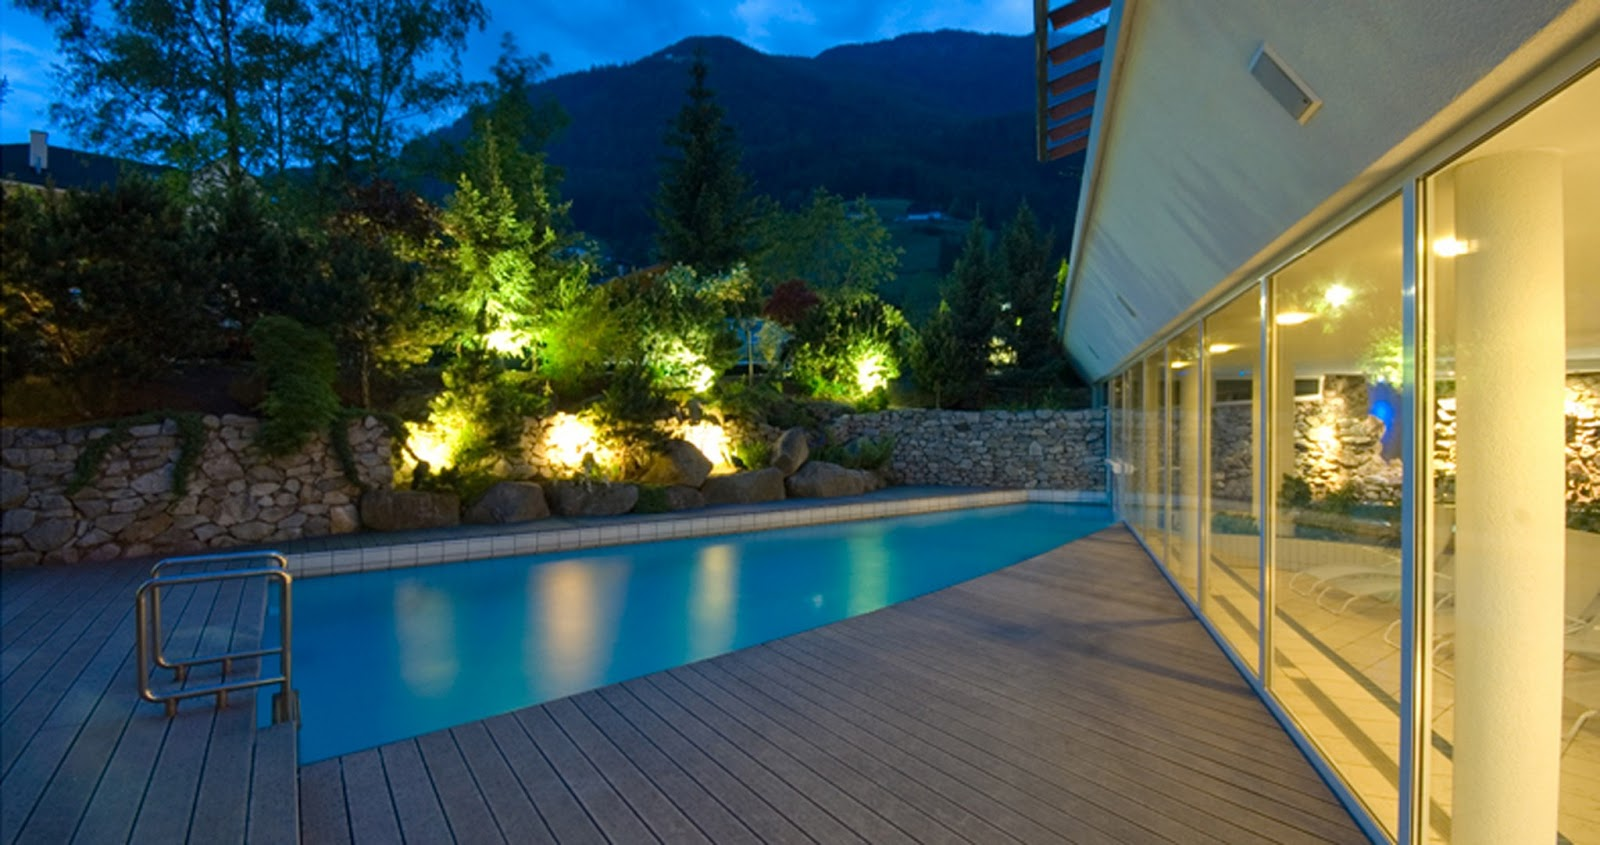 Italy sustainable travel feldmilla design hotel south tyrol for Design hotel feldmilla